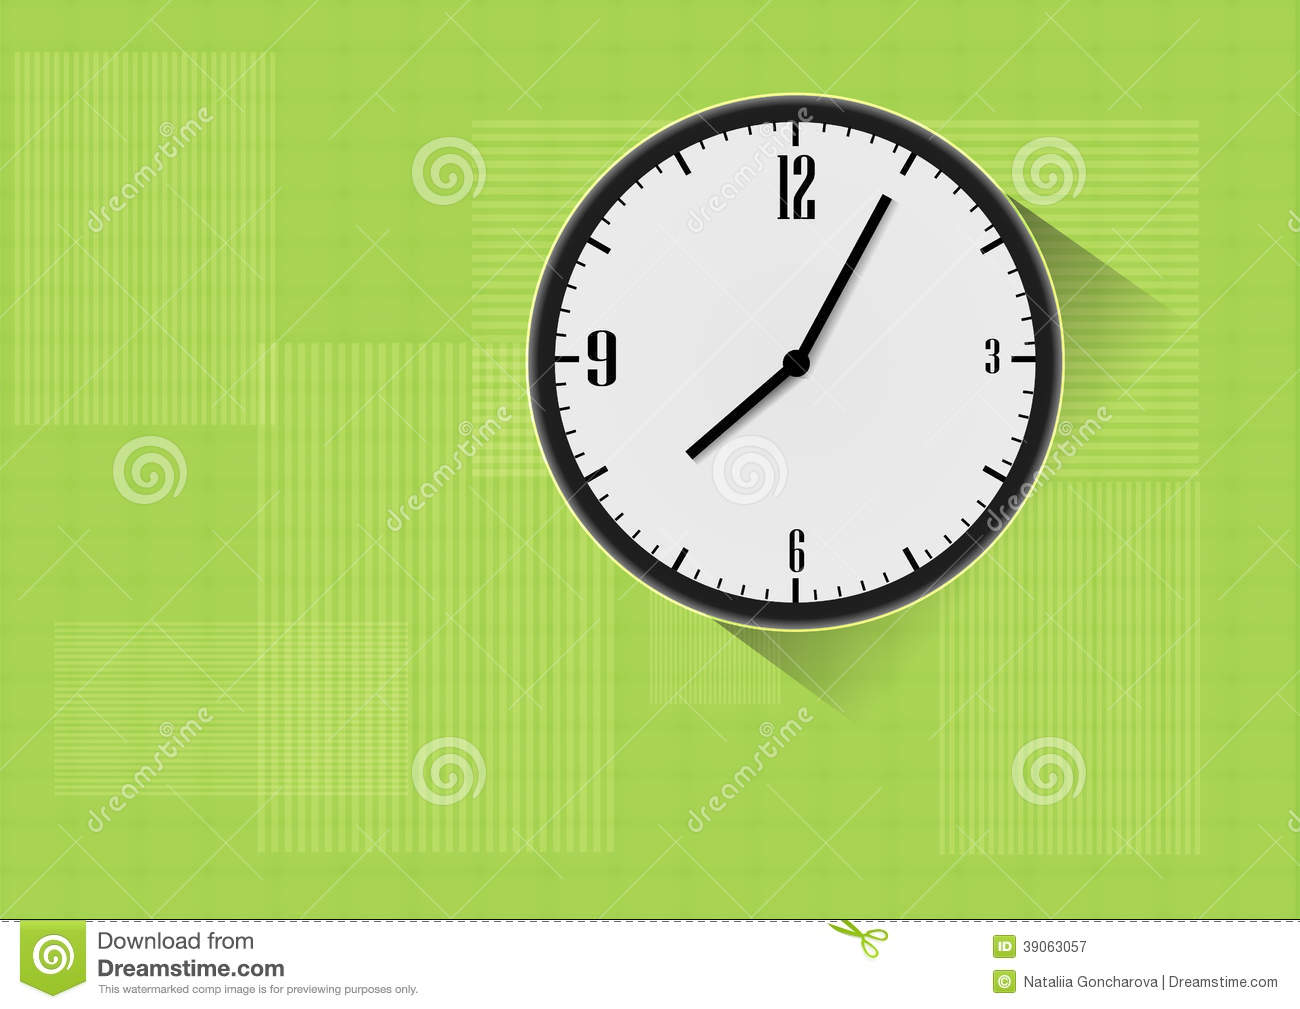 Vector Reloj Del 10 Stock Un Background Verde Ilustración De En eps 2bHeD9IYWE